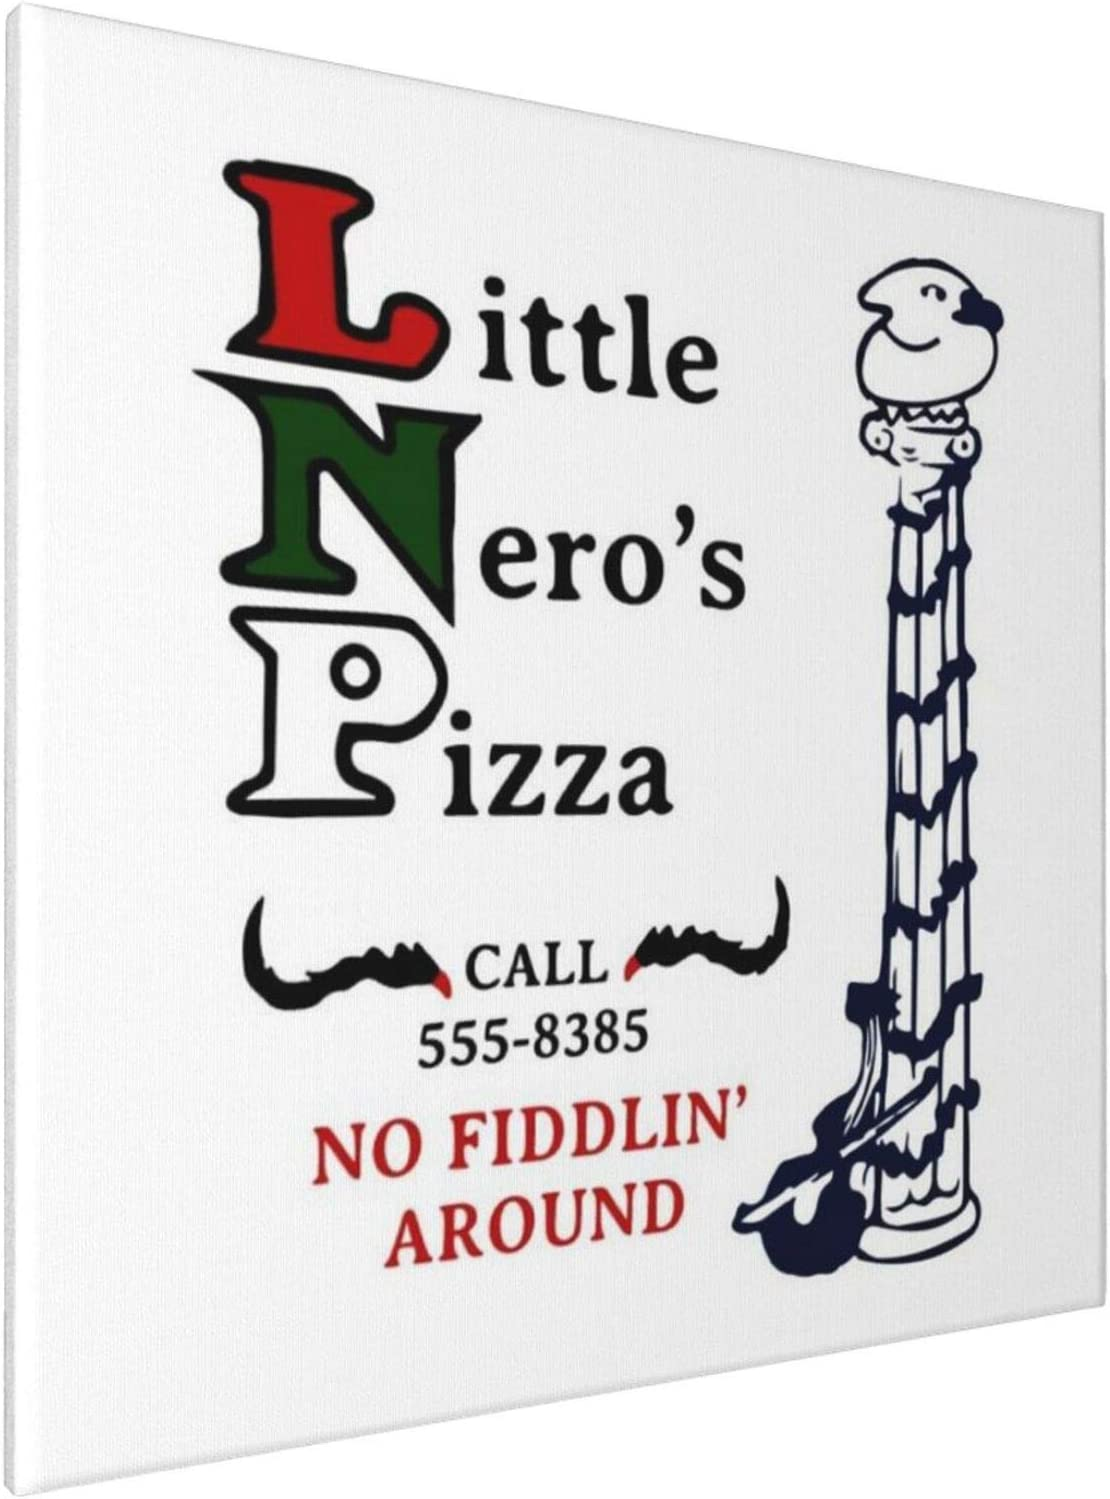 1007 Canvas Prints Wall Art Paintings(20x20in) Little Neros Pizza Home Alone Pictures Home Office Decor Framed Posters & Prints